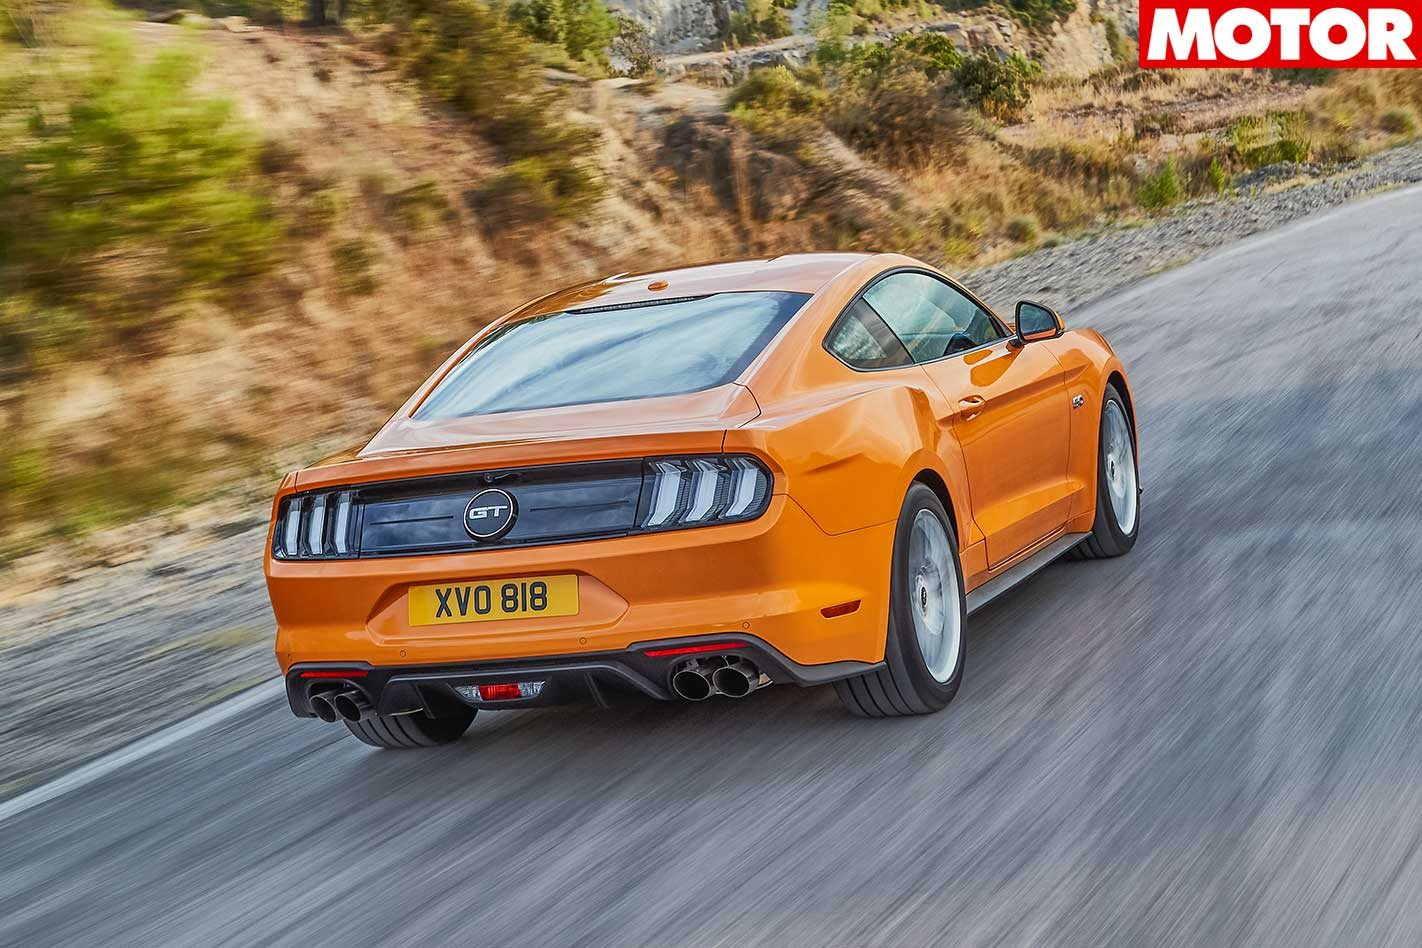 In ecoboost guise the mustang costs 49990 in manual 52990 for auto and 59490 in drop top form